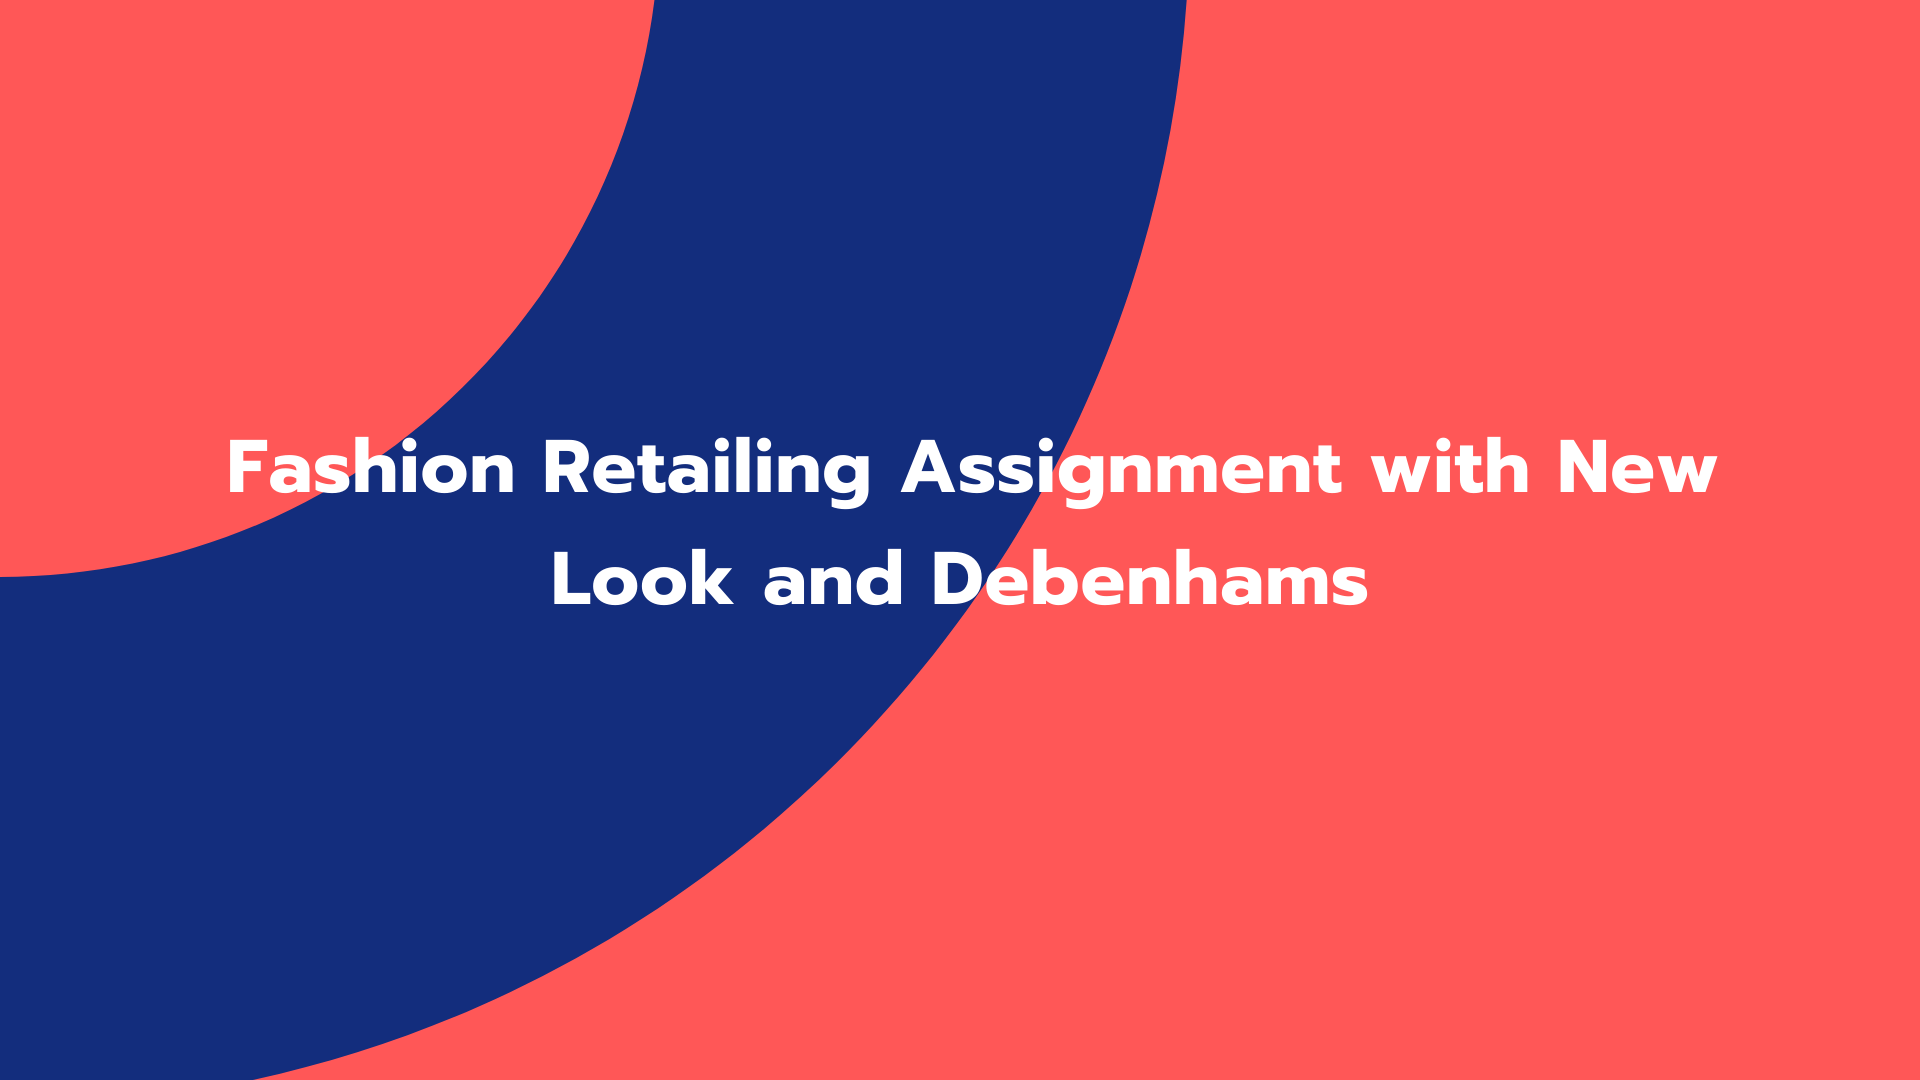 Fashion Retailing Assignment with New Look and Debenhams